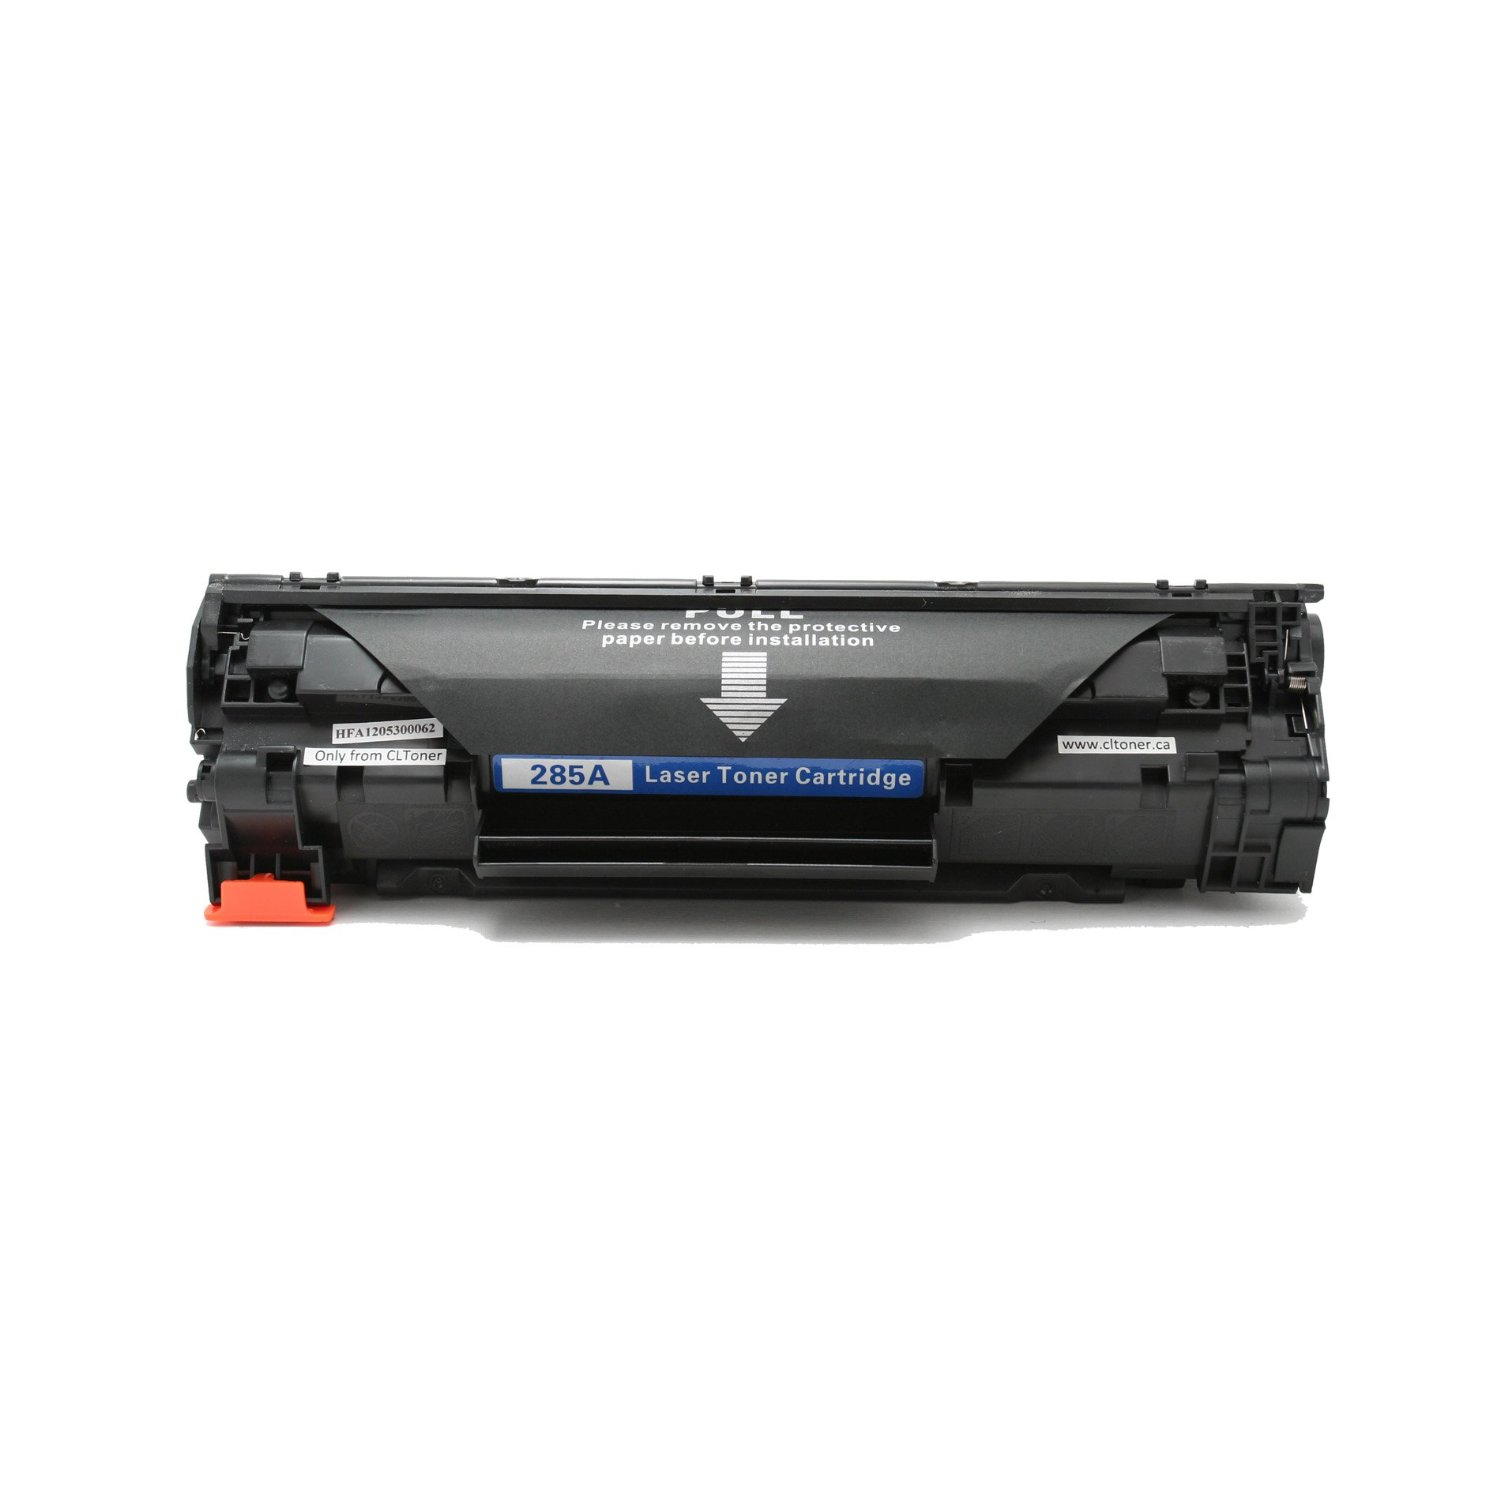 For Hp Crhouse Technology Inc Computer Parts And Accessories Toner Cartridge 12a Laserjet Compatible Ce285a New Pro P1100 P1102 P1102w